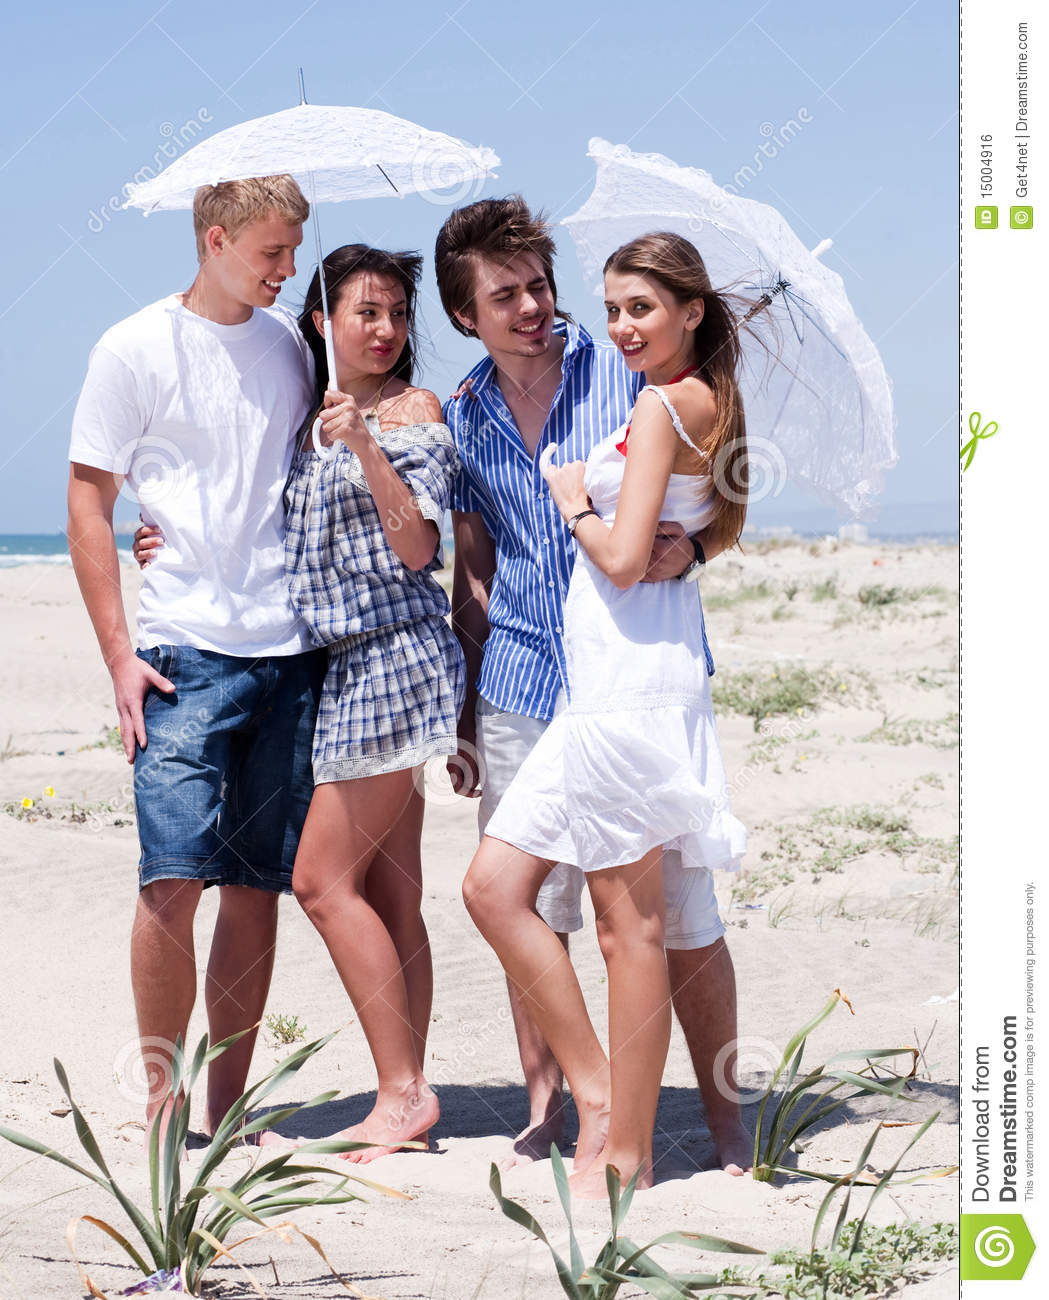 Couple At The Beach Stock Image Image Of Caucasian: Romantic Couples Of Four At The Beach Stock Photo